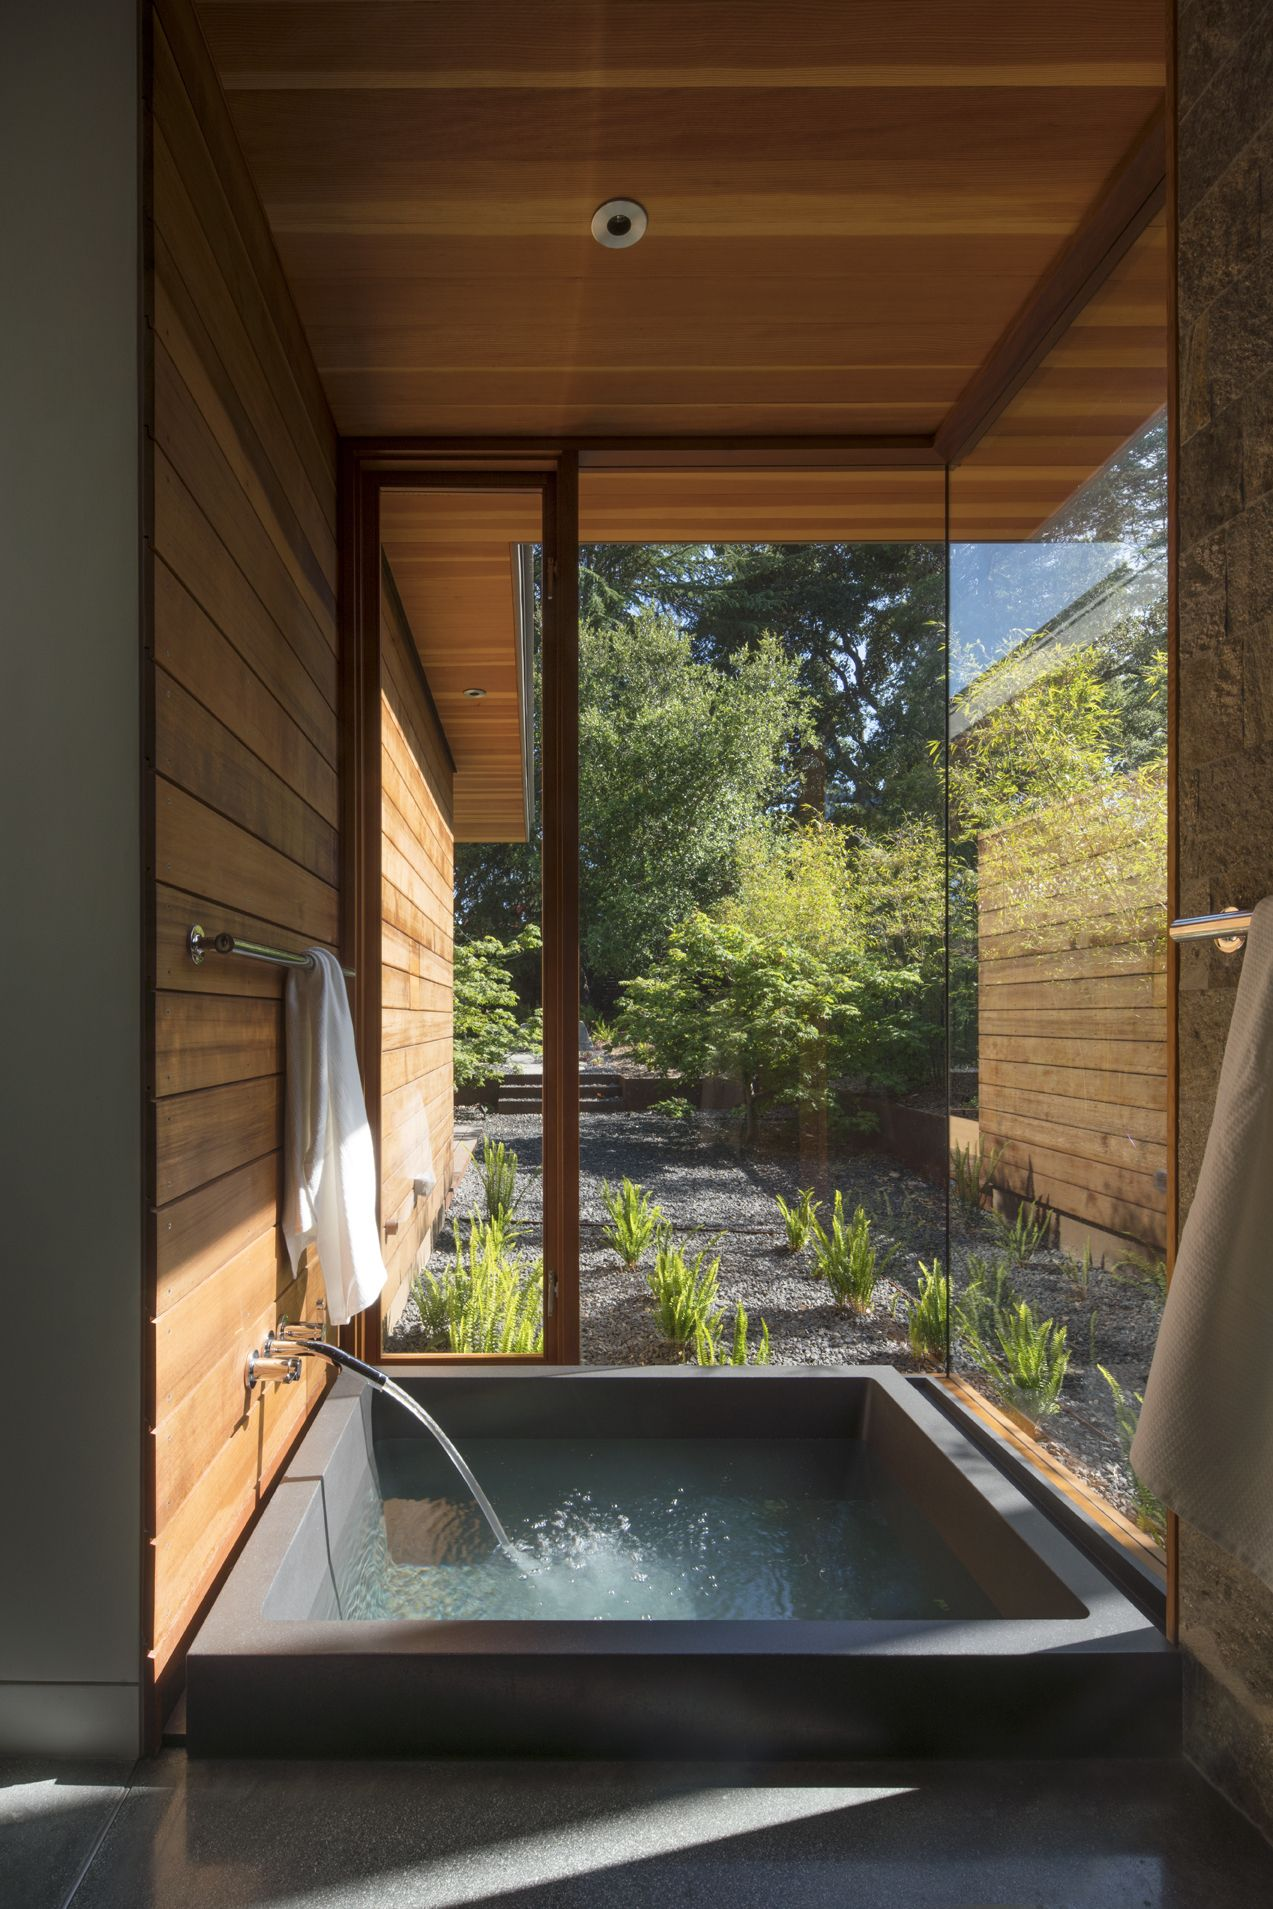 Awesome An Onsen, Or Japanese Soaking Tub, With A Private Garden Abuts The Master  Suite